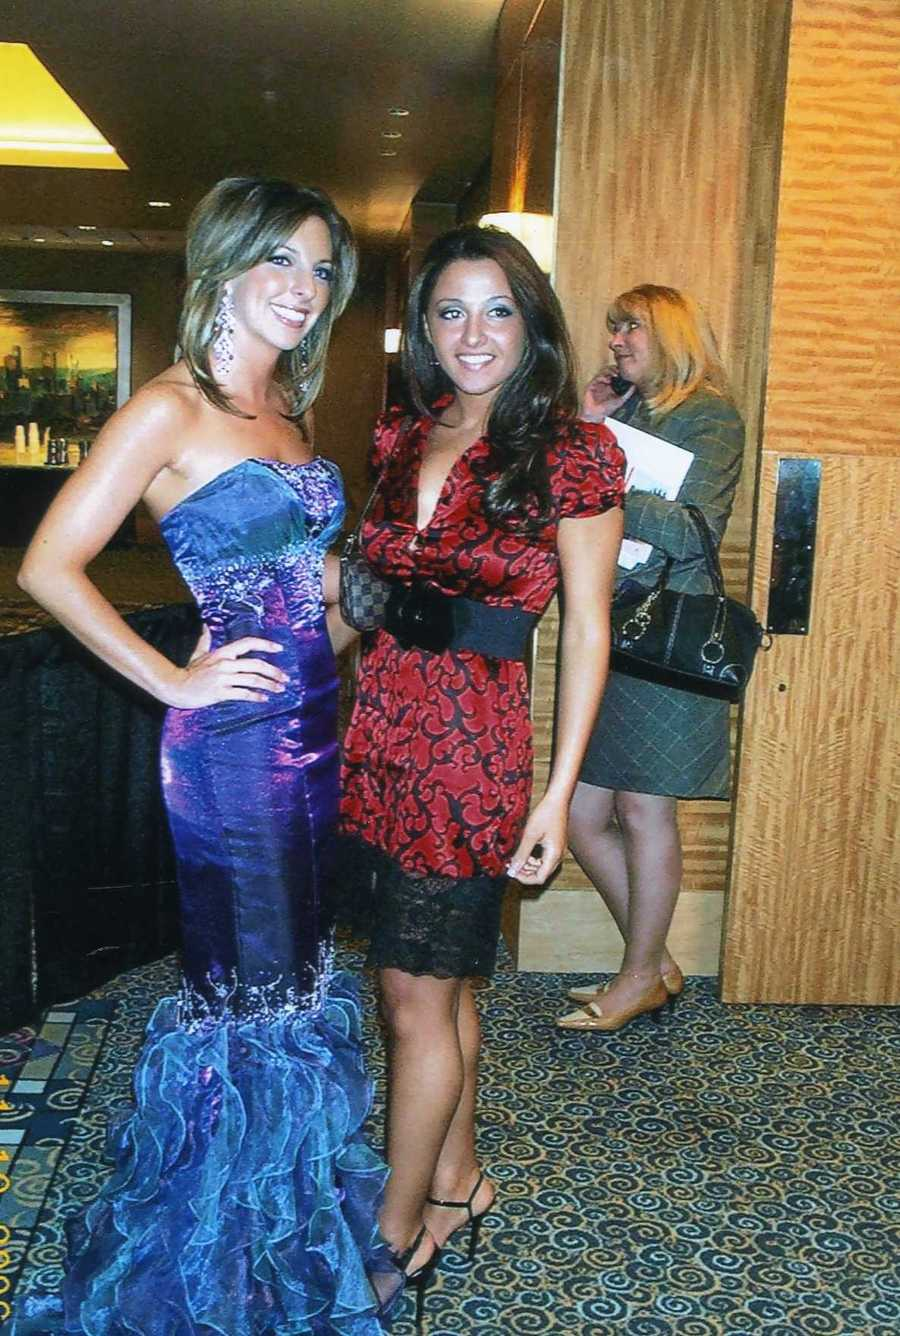 Ashley has competed in several pageants, including Miss Pennsylvania USA.